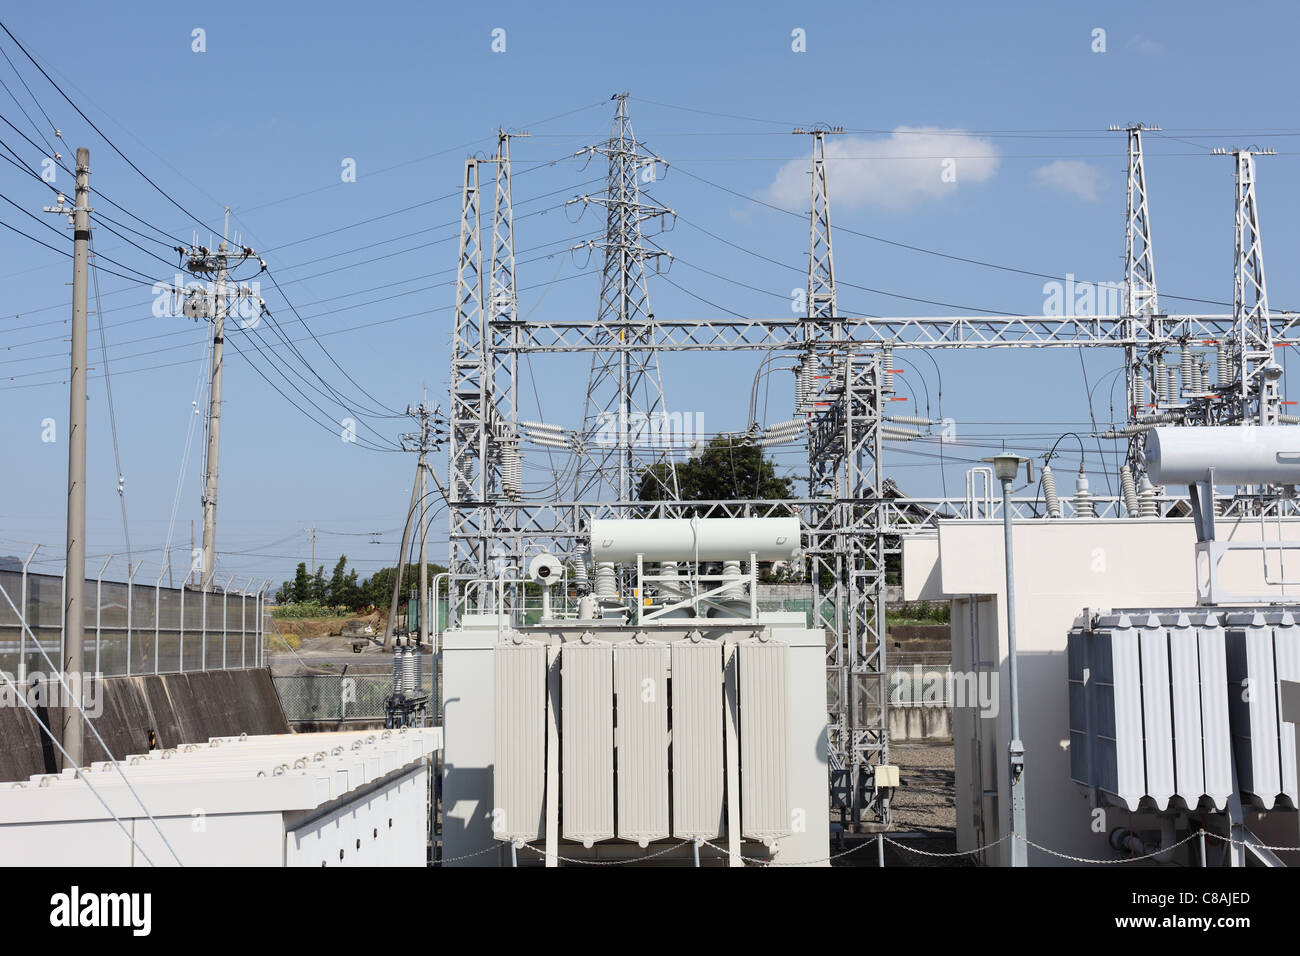 yokoyama control transformer wiring diagram chevy express diagrams electrical power in high voltage substation